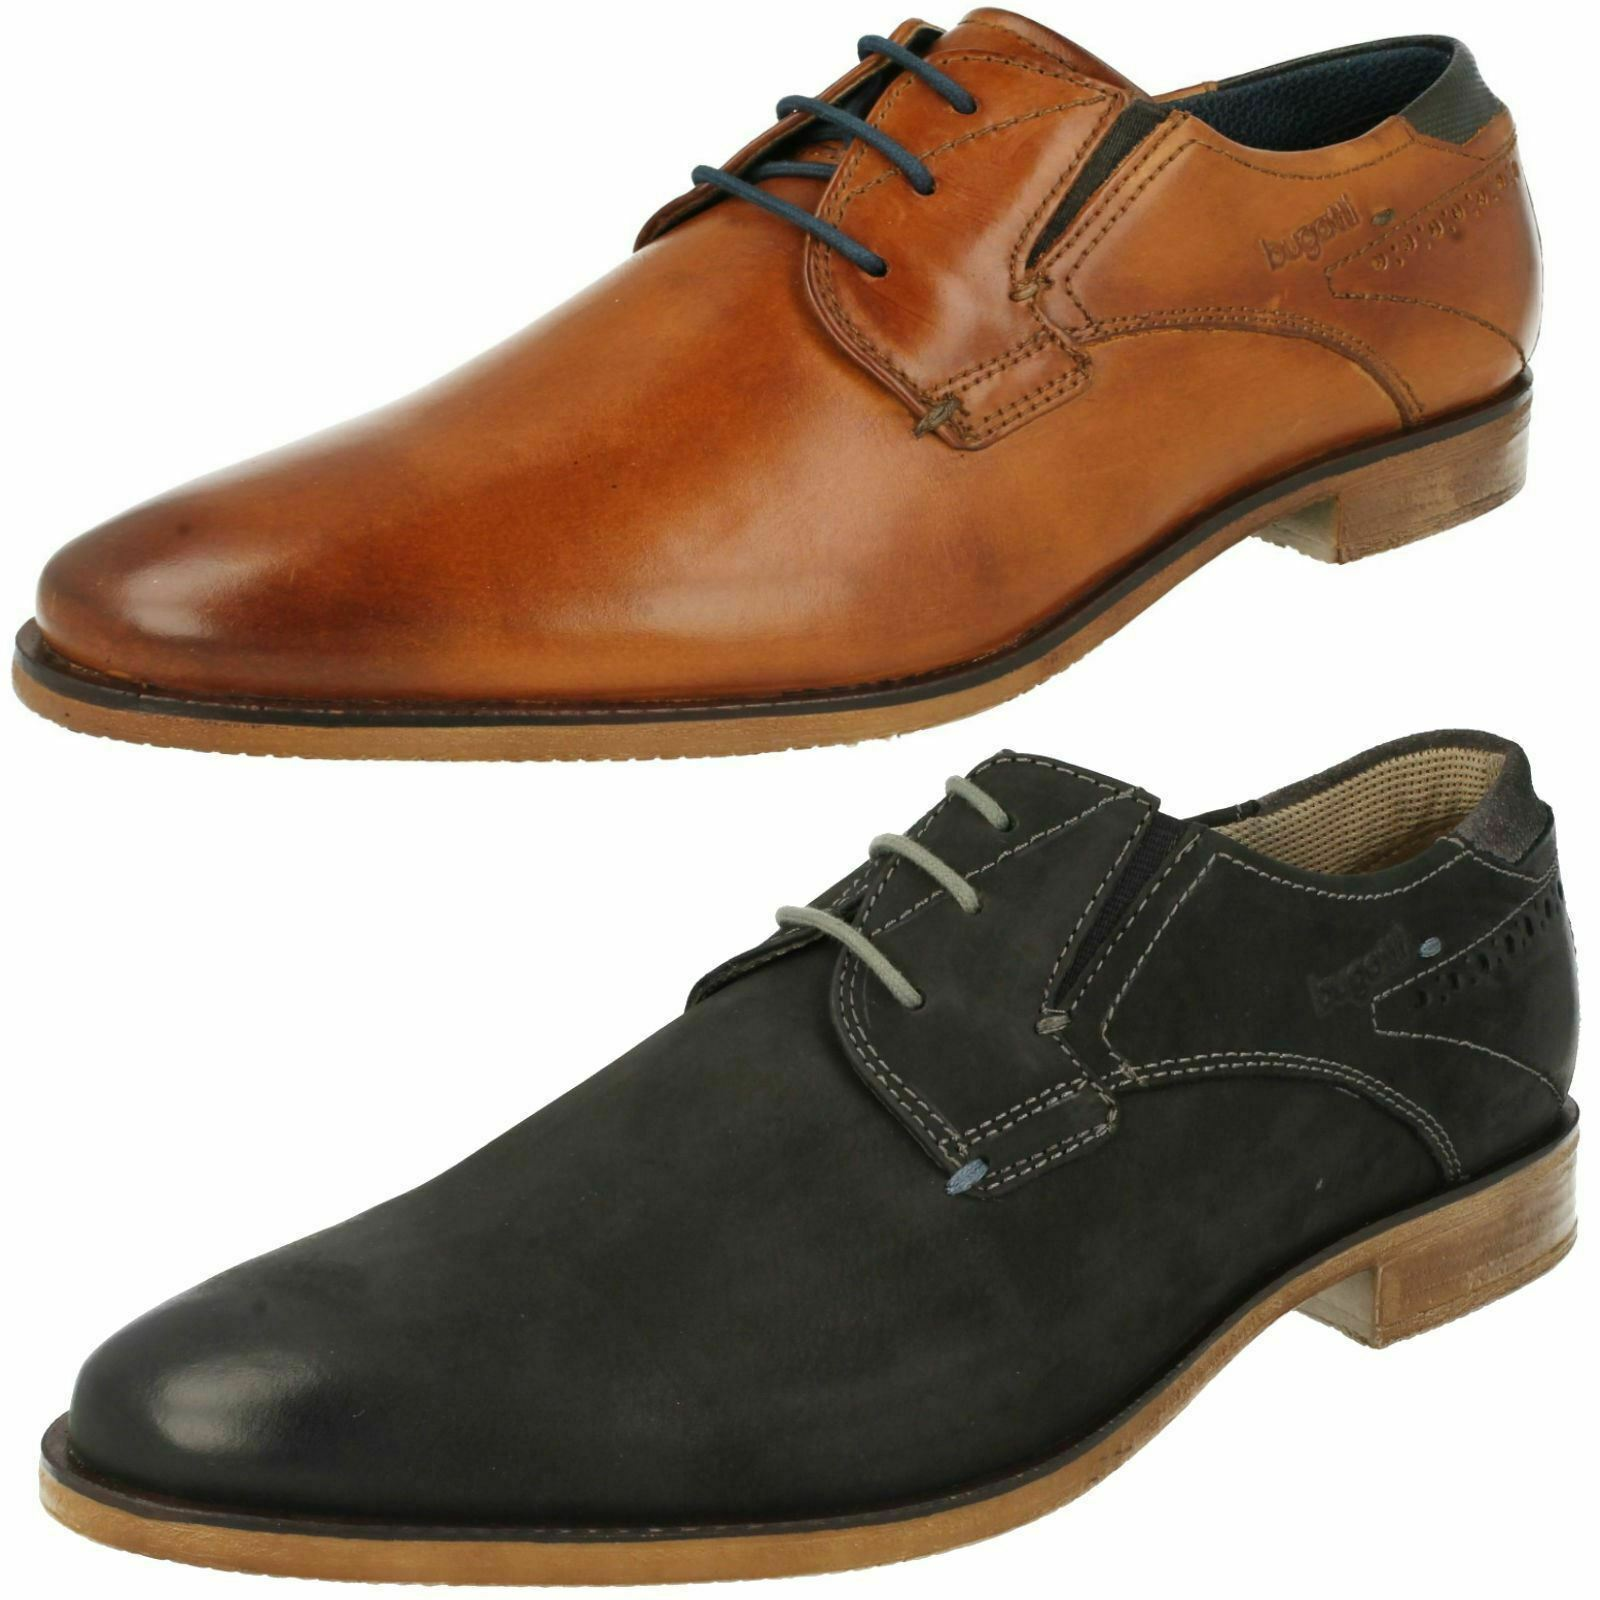 MENS BUGATTI LEATHER LACE UP SMART FORMAL OFFICE WEDDING schuhe 311-25101-1000